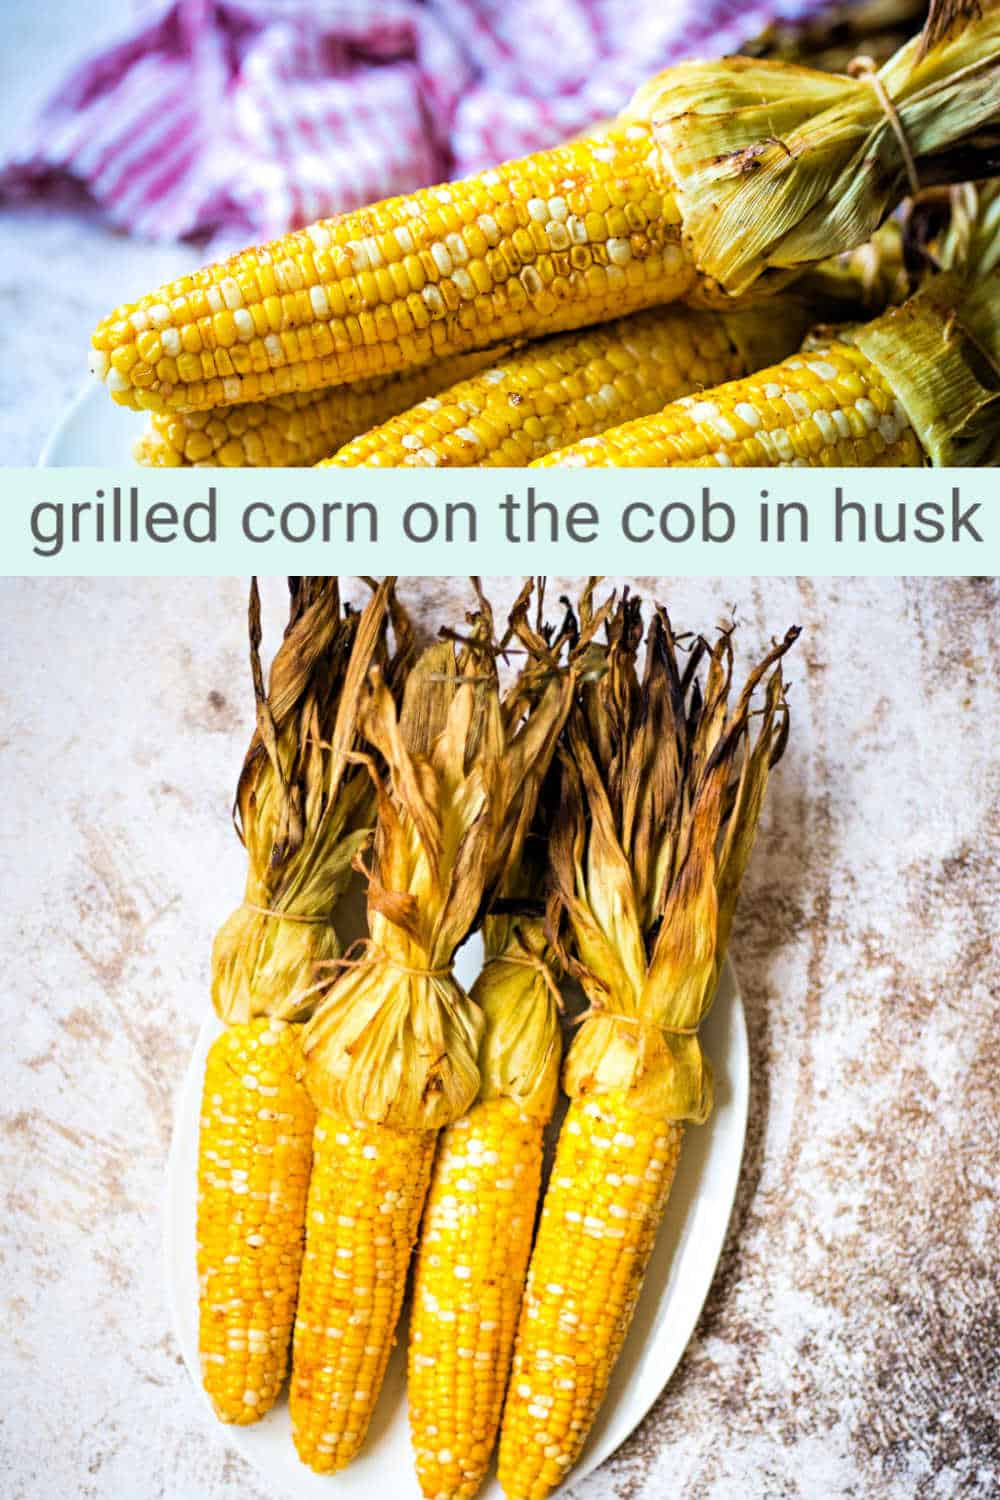 Sweet and spicy, Grilled Corn on the Cob in the Husk is a real summertime treat. The technique of grilling fresh corn in the husk is the secret to getting tender steamed corn and smoky flavor all at once. This fresh corn is basted with spicy garlic-infused butter and grilled over direct heat for about 20 minutes — and turns out perfect every time!